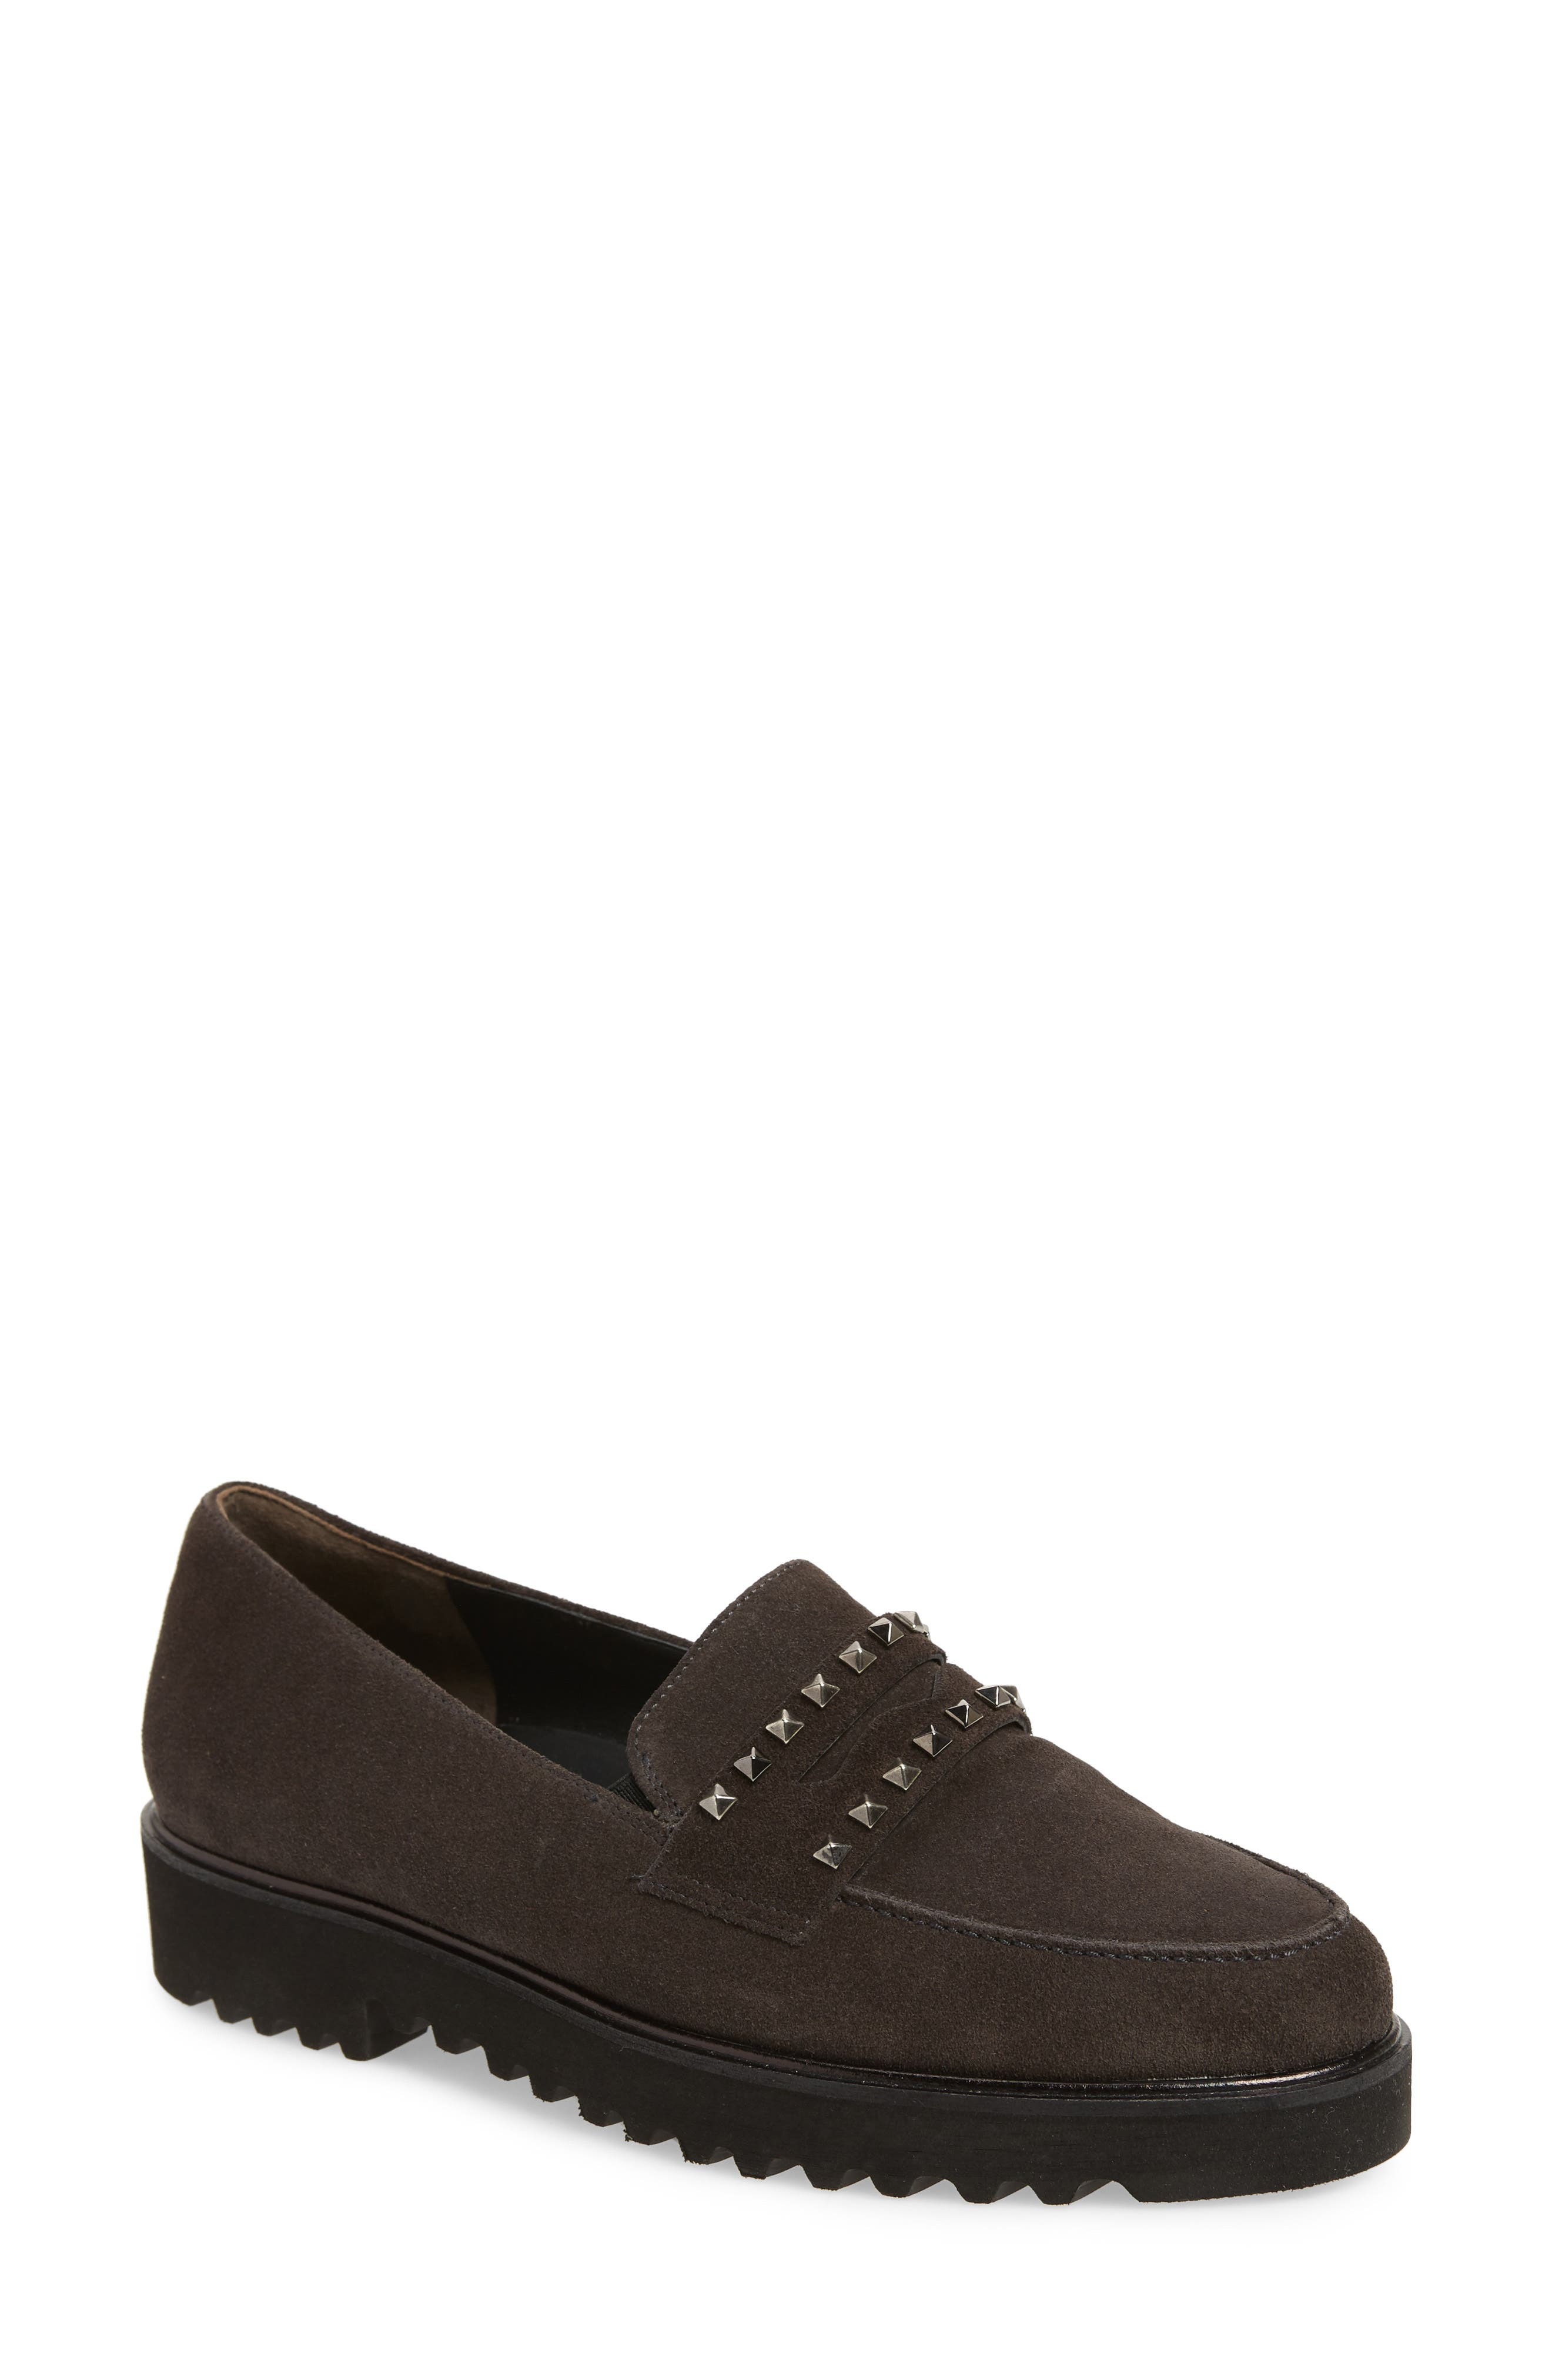 Sofia Loafer,                             Main thumbnail 1, color,                             ANTHRACITE SUEDE